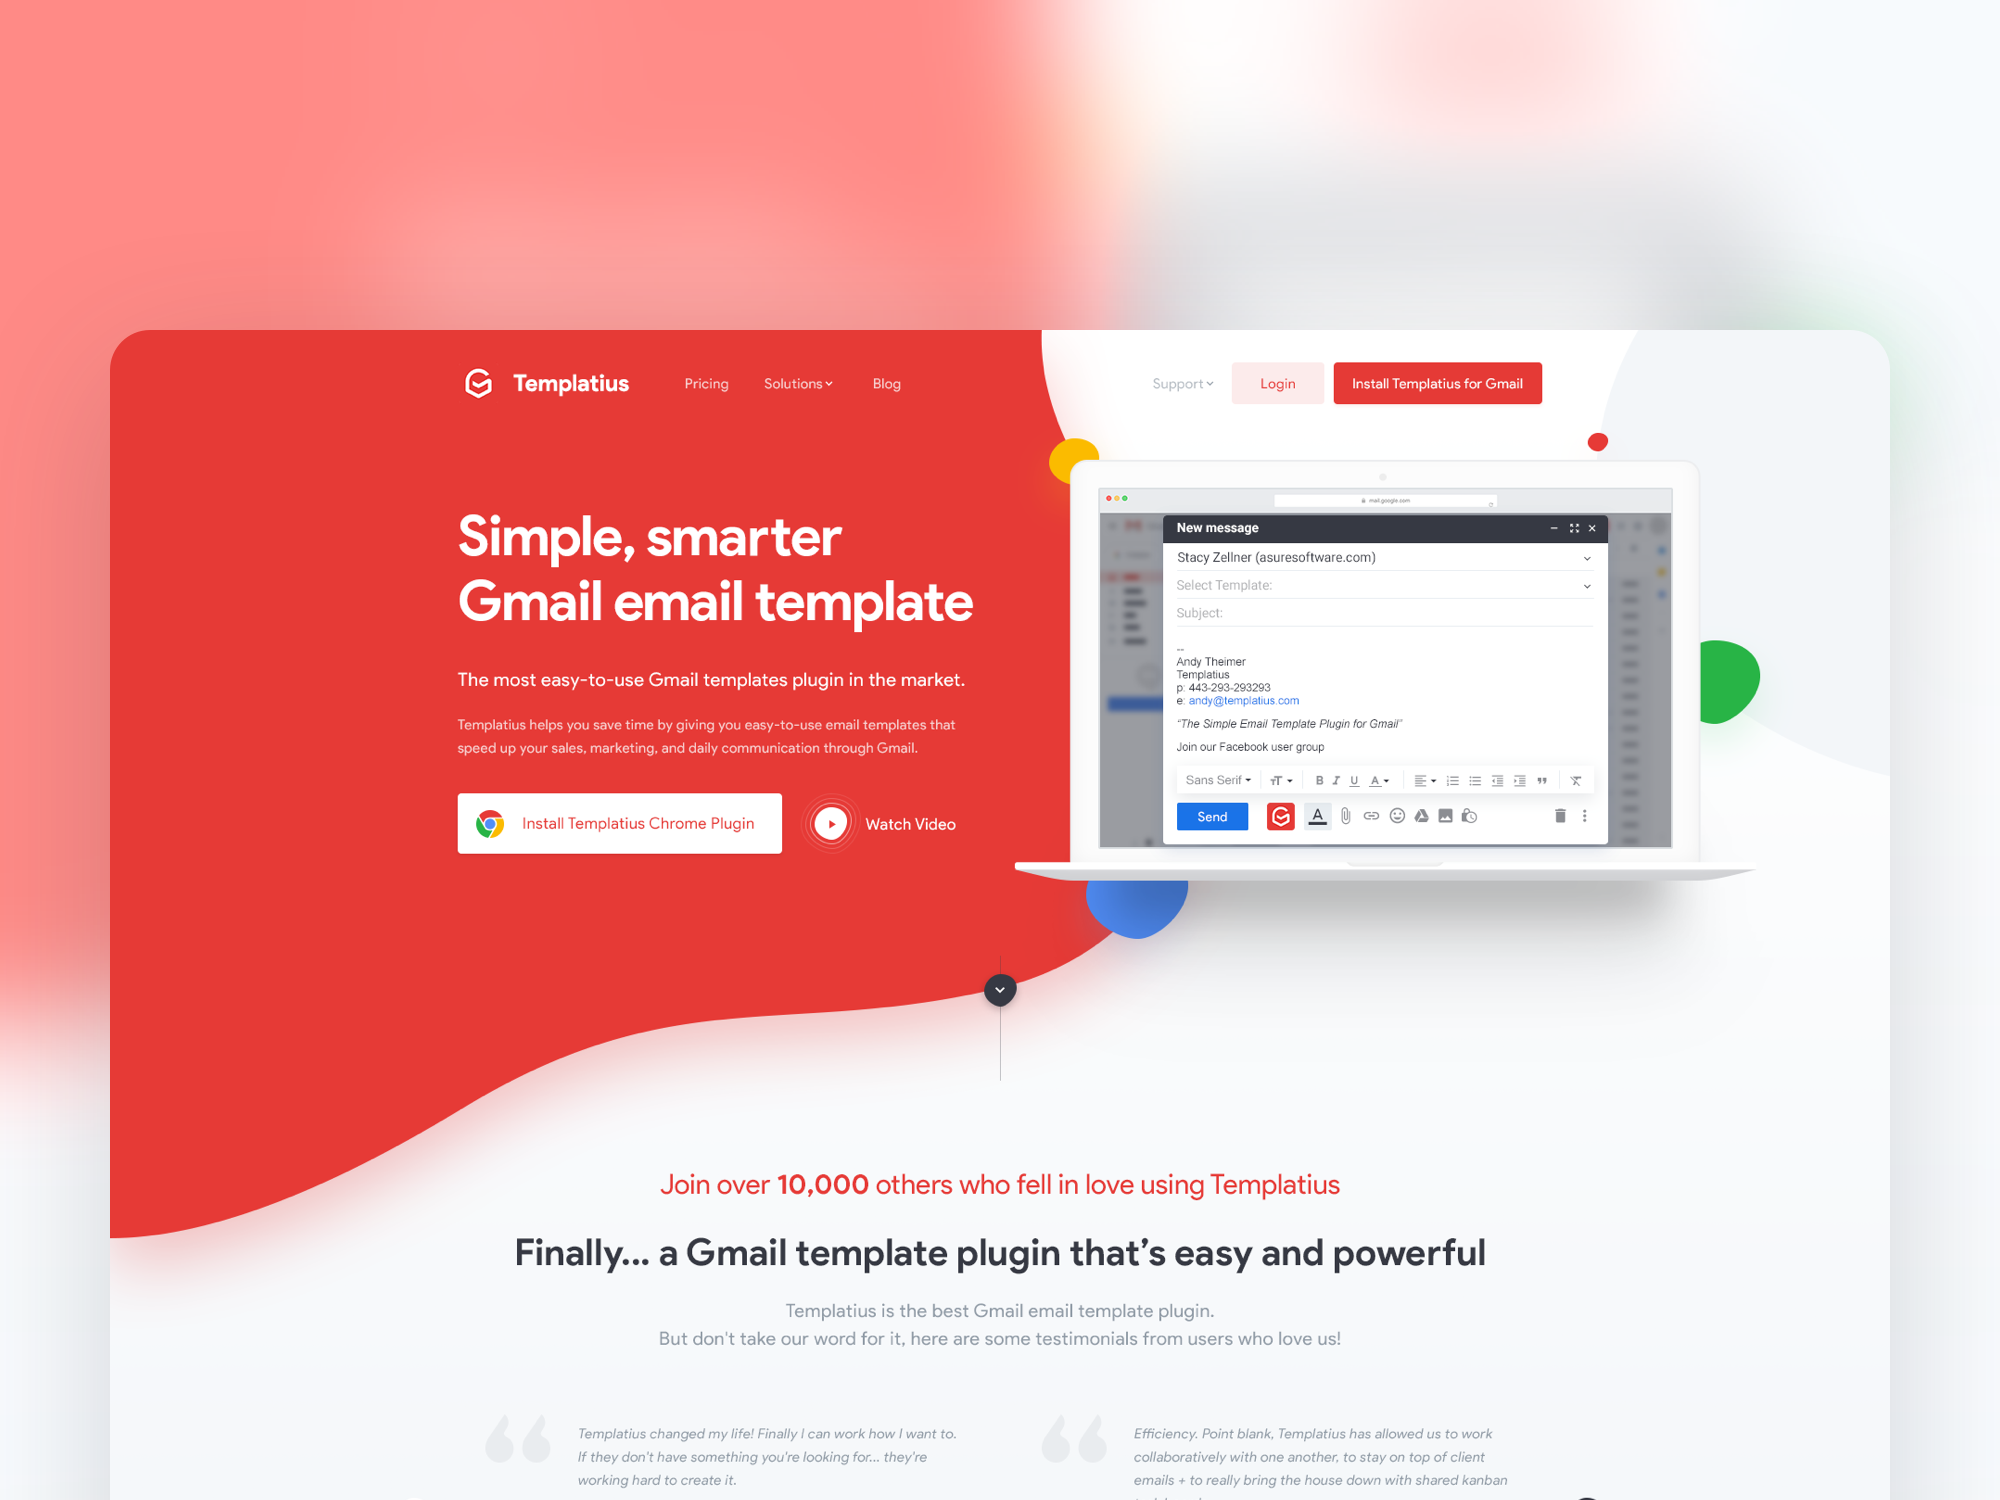 A Simple, smarter Gmail email template - Templatius by Dunx Design